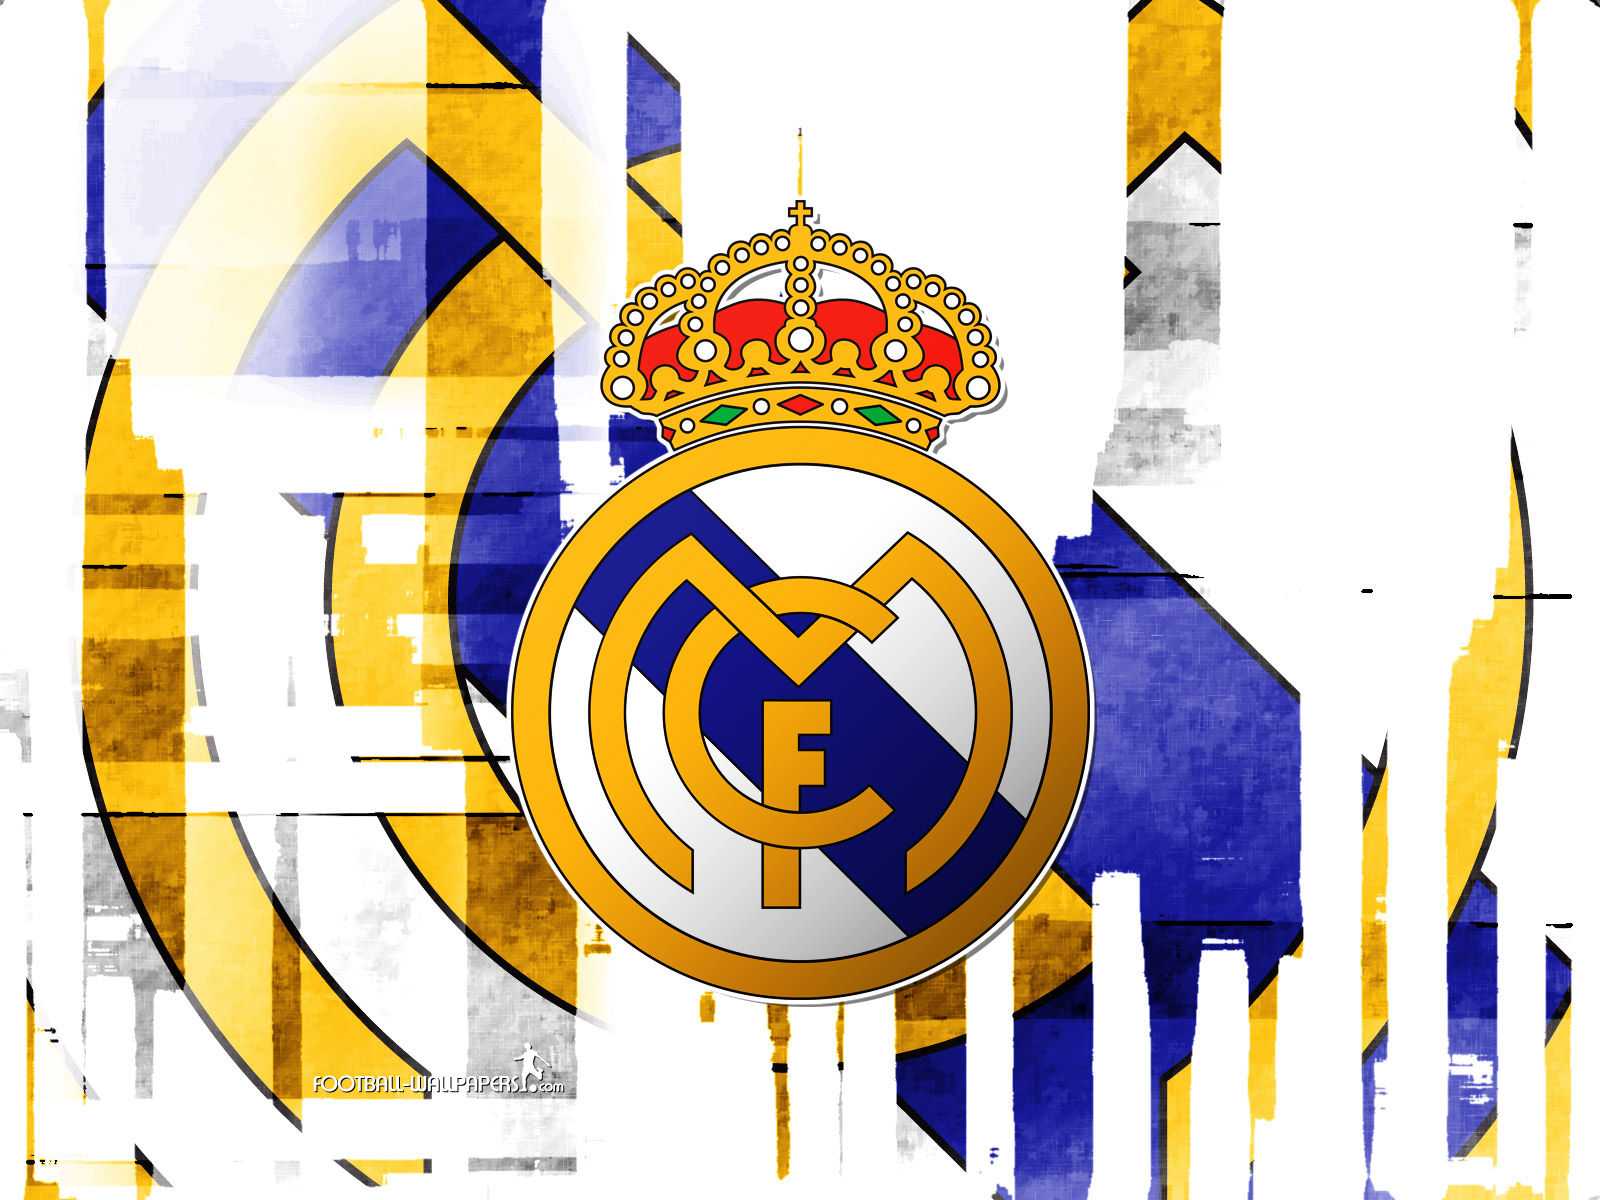 1600x1200 - Real Madrid C.F. Wallpapers 3